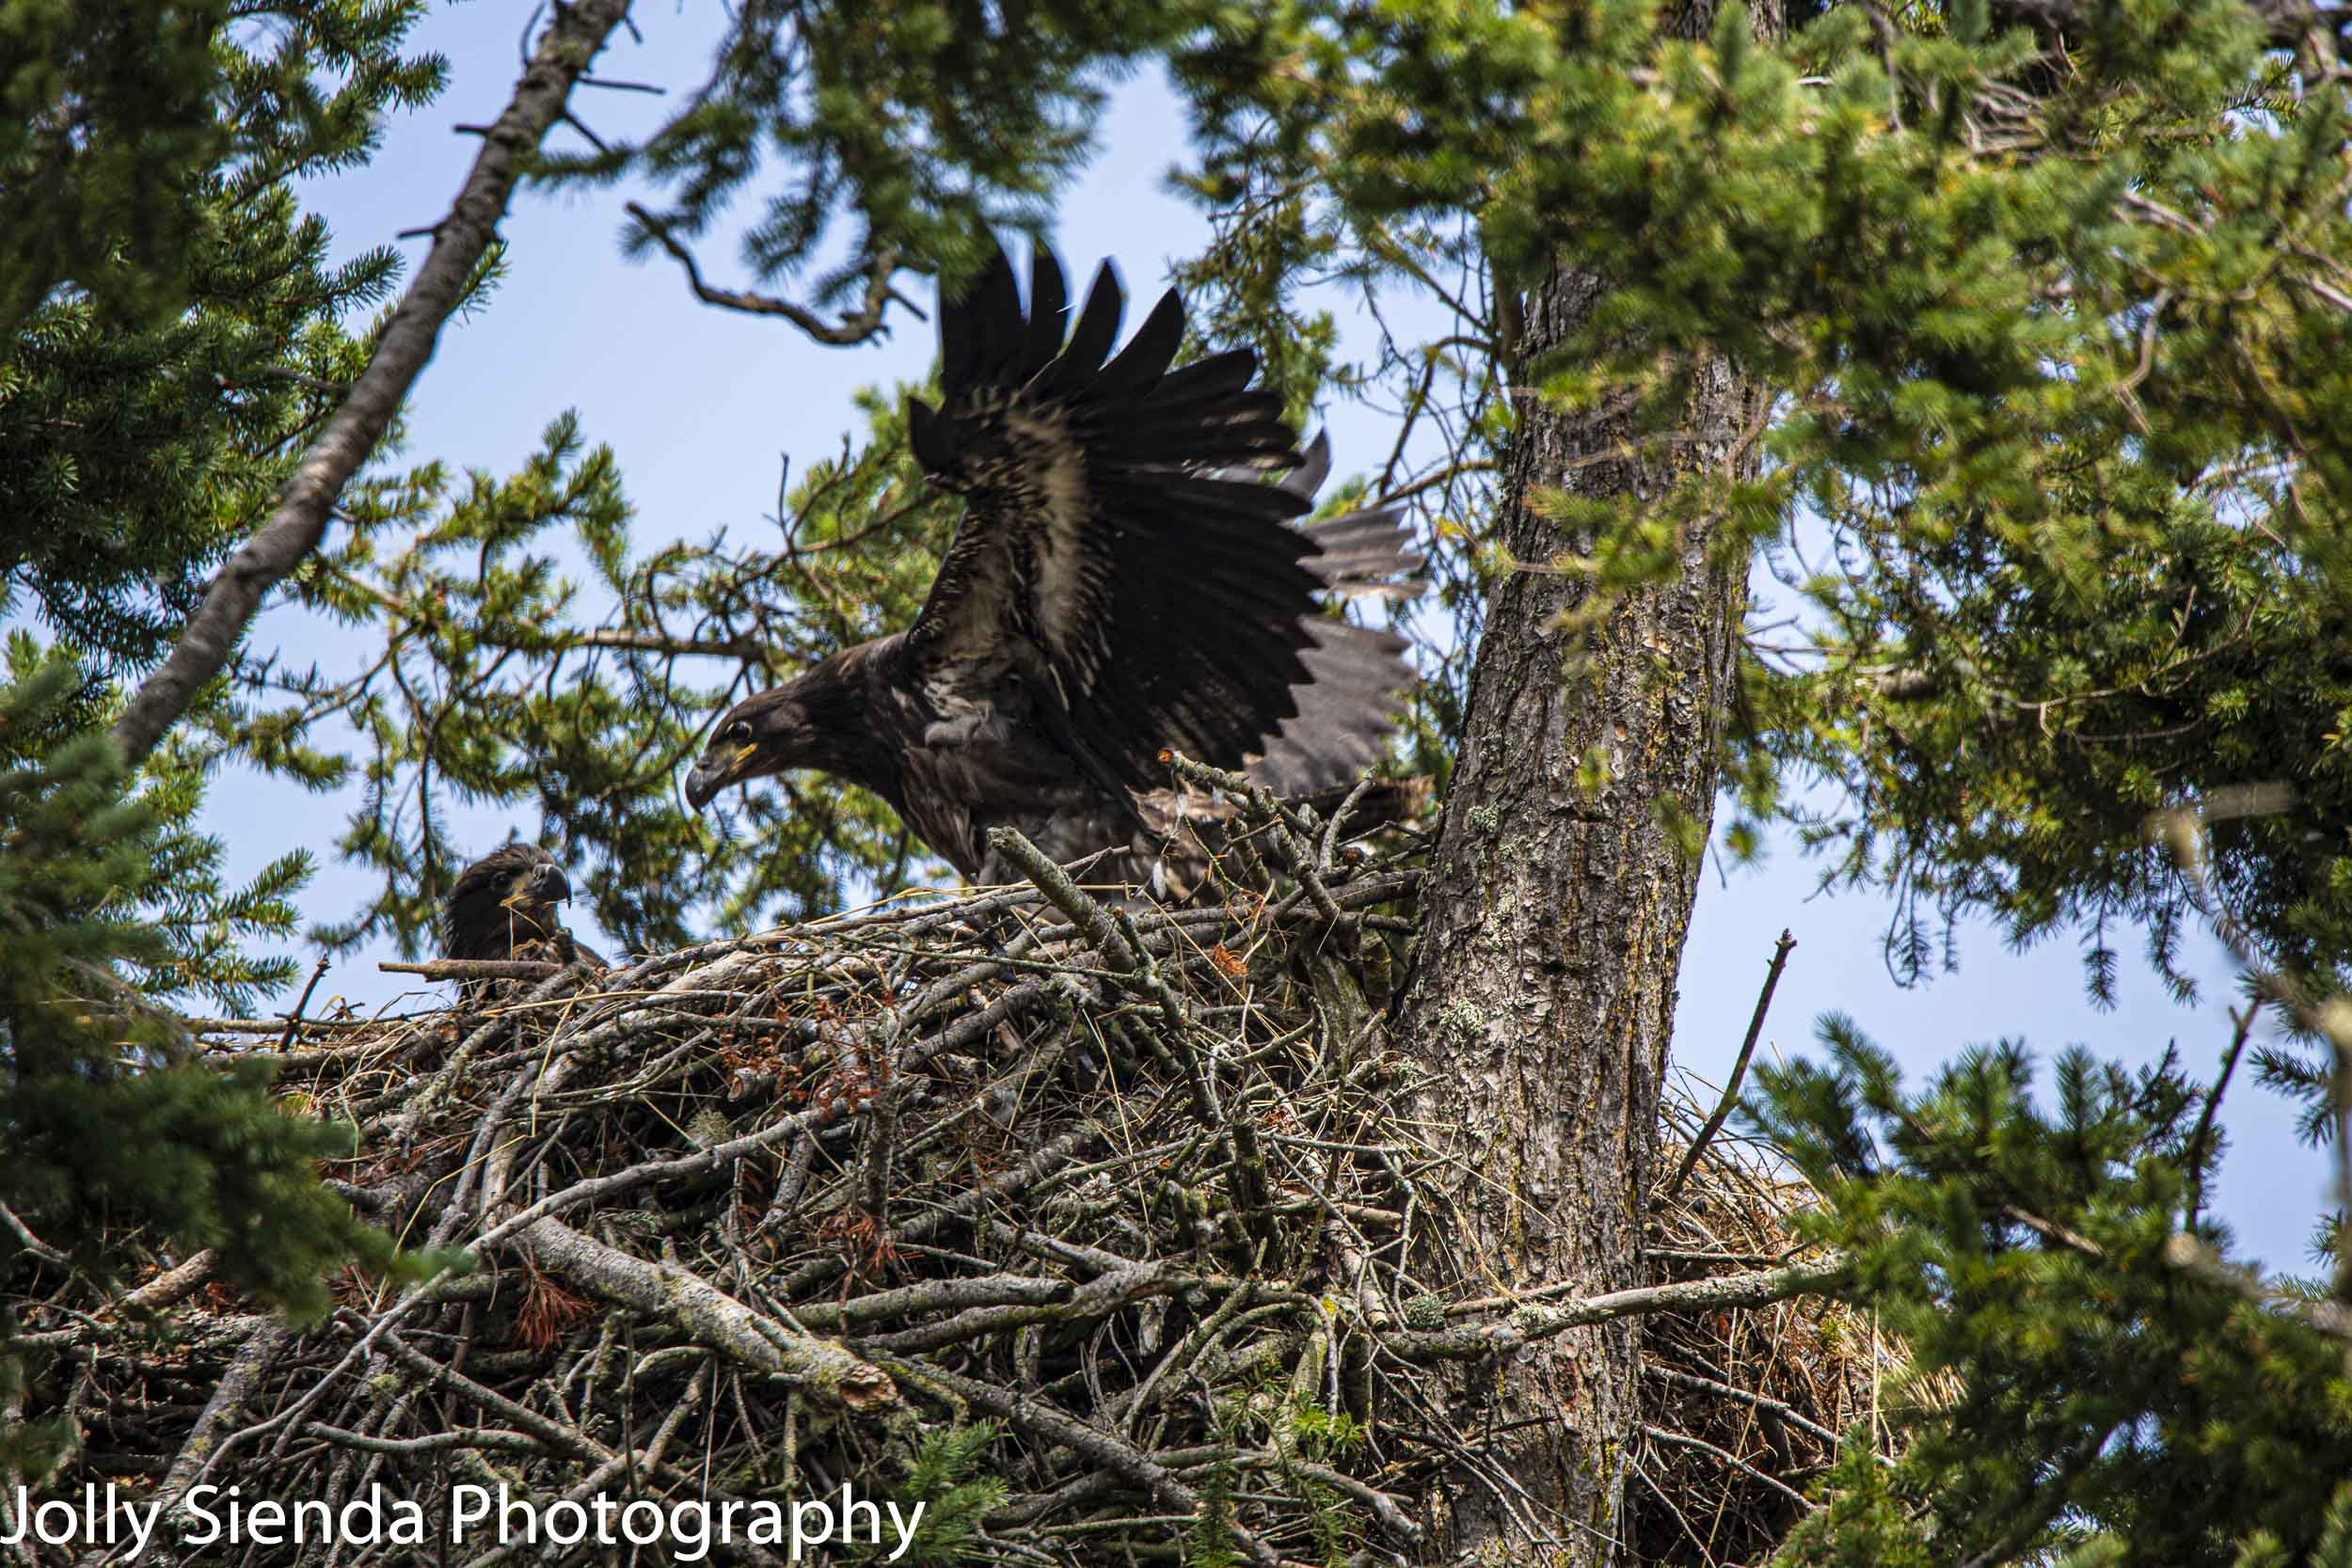 Young juvenile Bald Eagles learn to fly while fledgling in their nest, Sequim, Washington